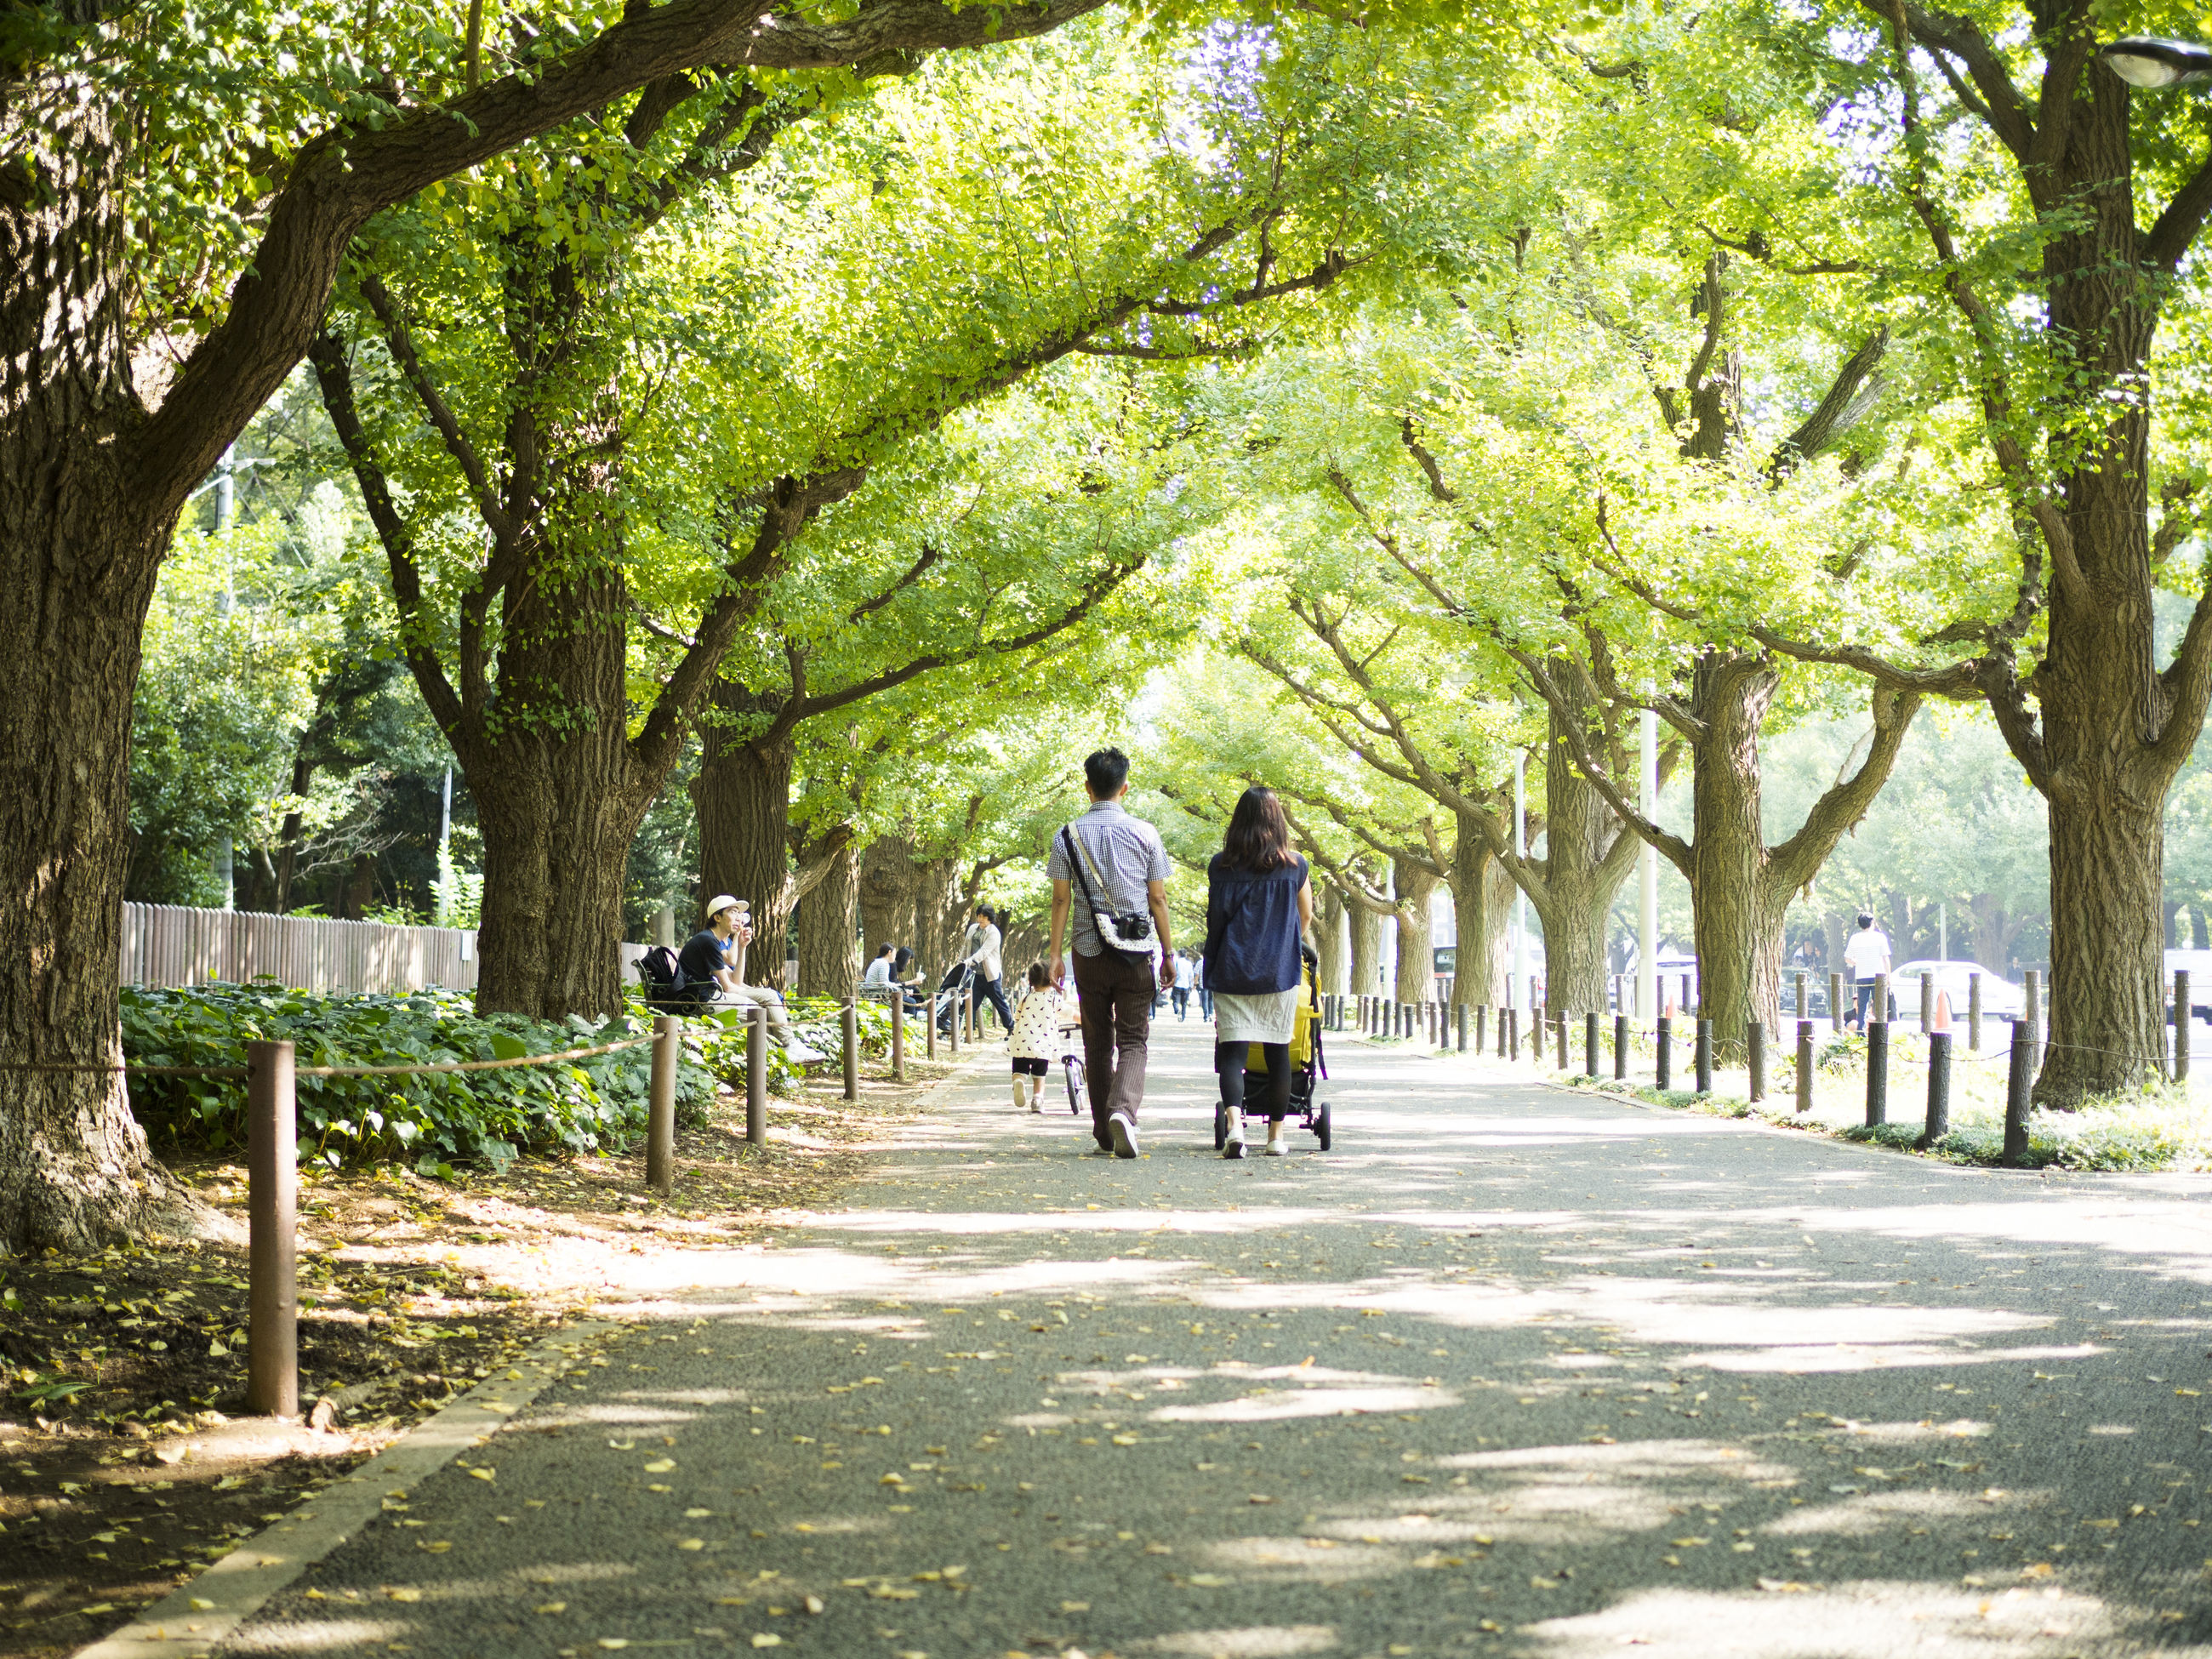 REAR VIEW OF TWO PEOPLE WALKING ON FOOTPATH IN PARK